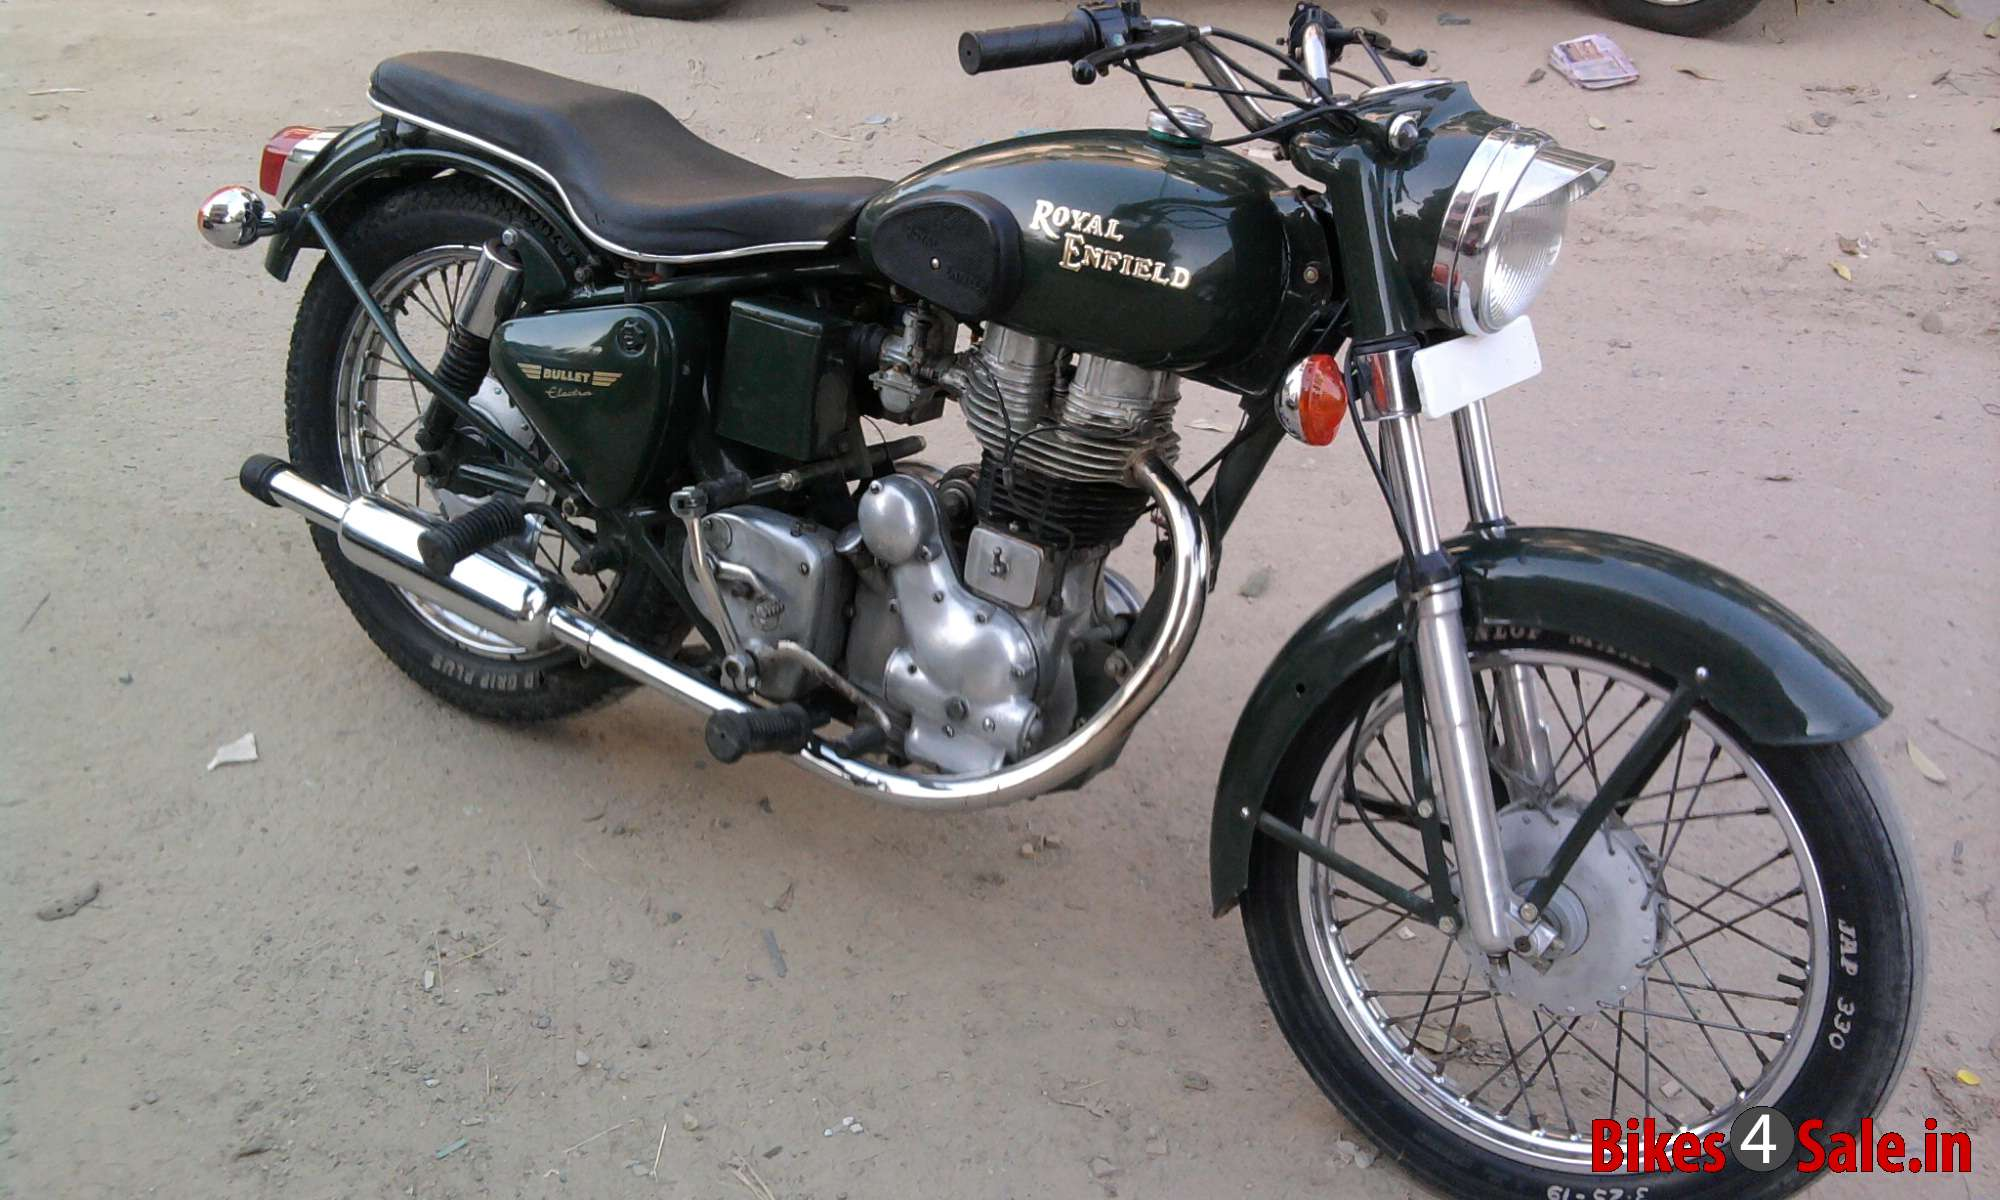 Royal Enfield Bullet 350 Army 2002 images #123586